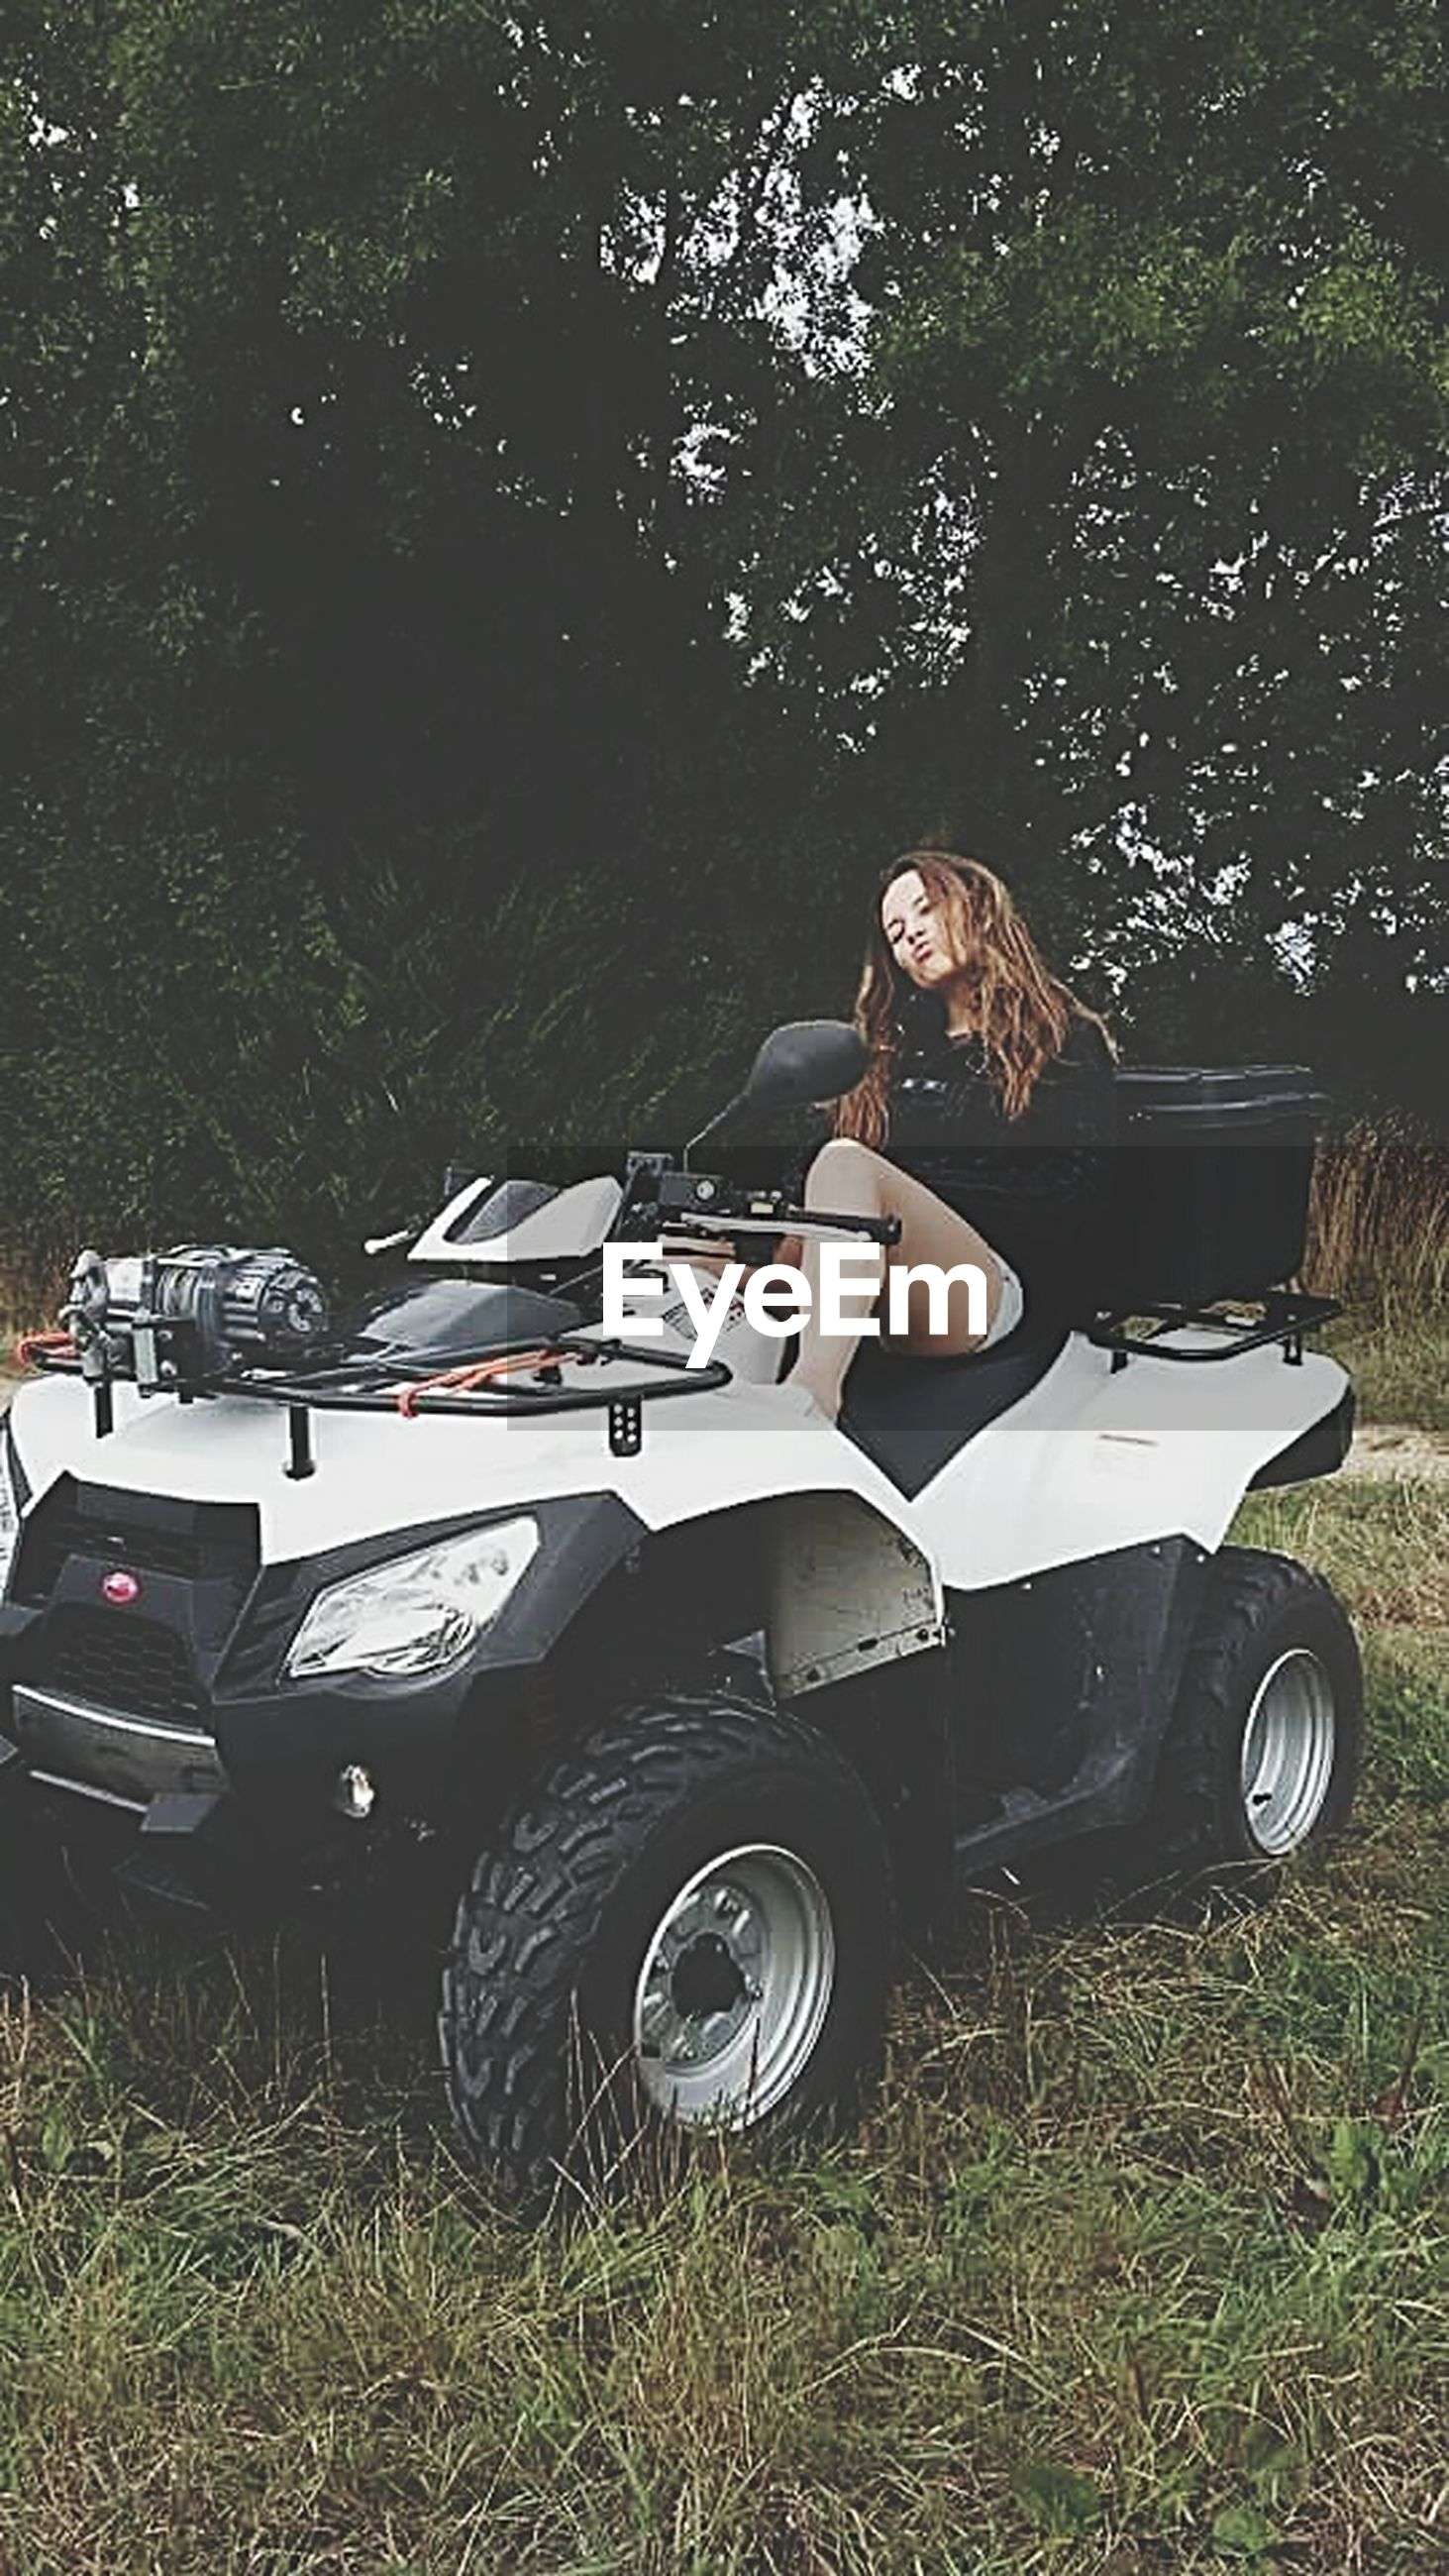 land vehicle, transportation, mode of transport, grass, car, field, stationary, grassy, parking, parked, bicycle, day, outdoors, high angle view, abandoned, sunlight, motorcycle, travel, absence, one person